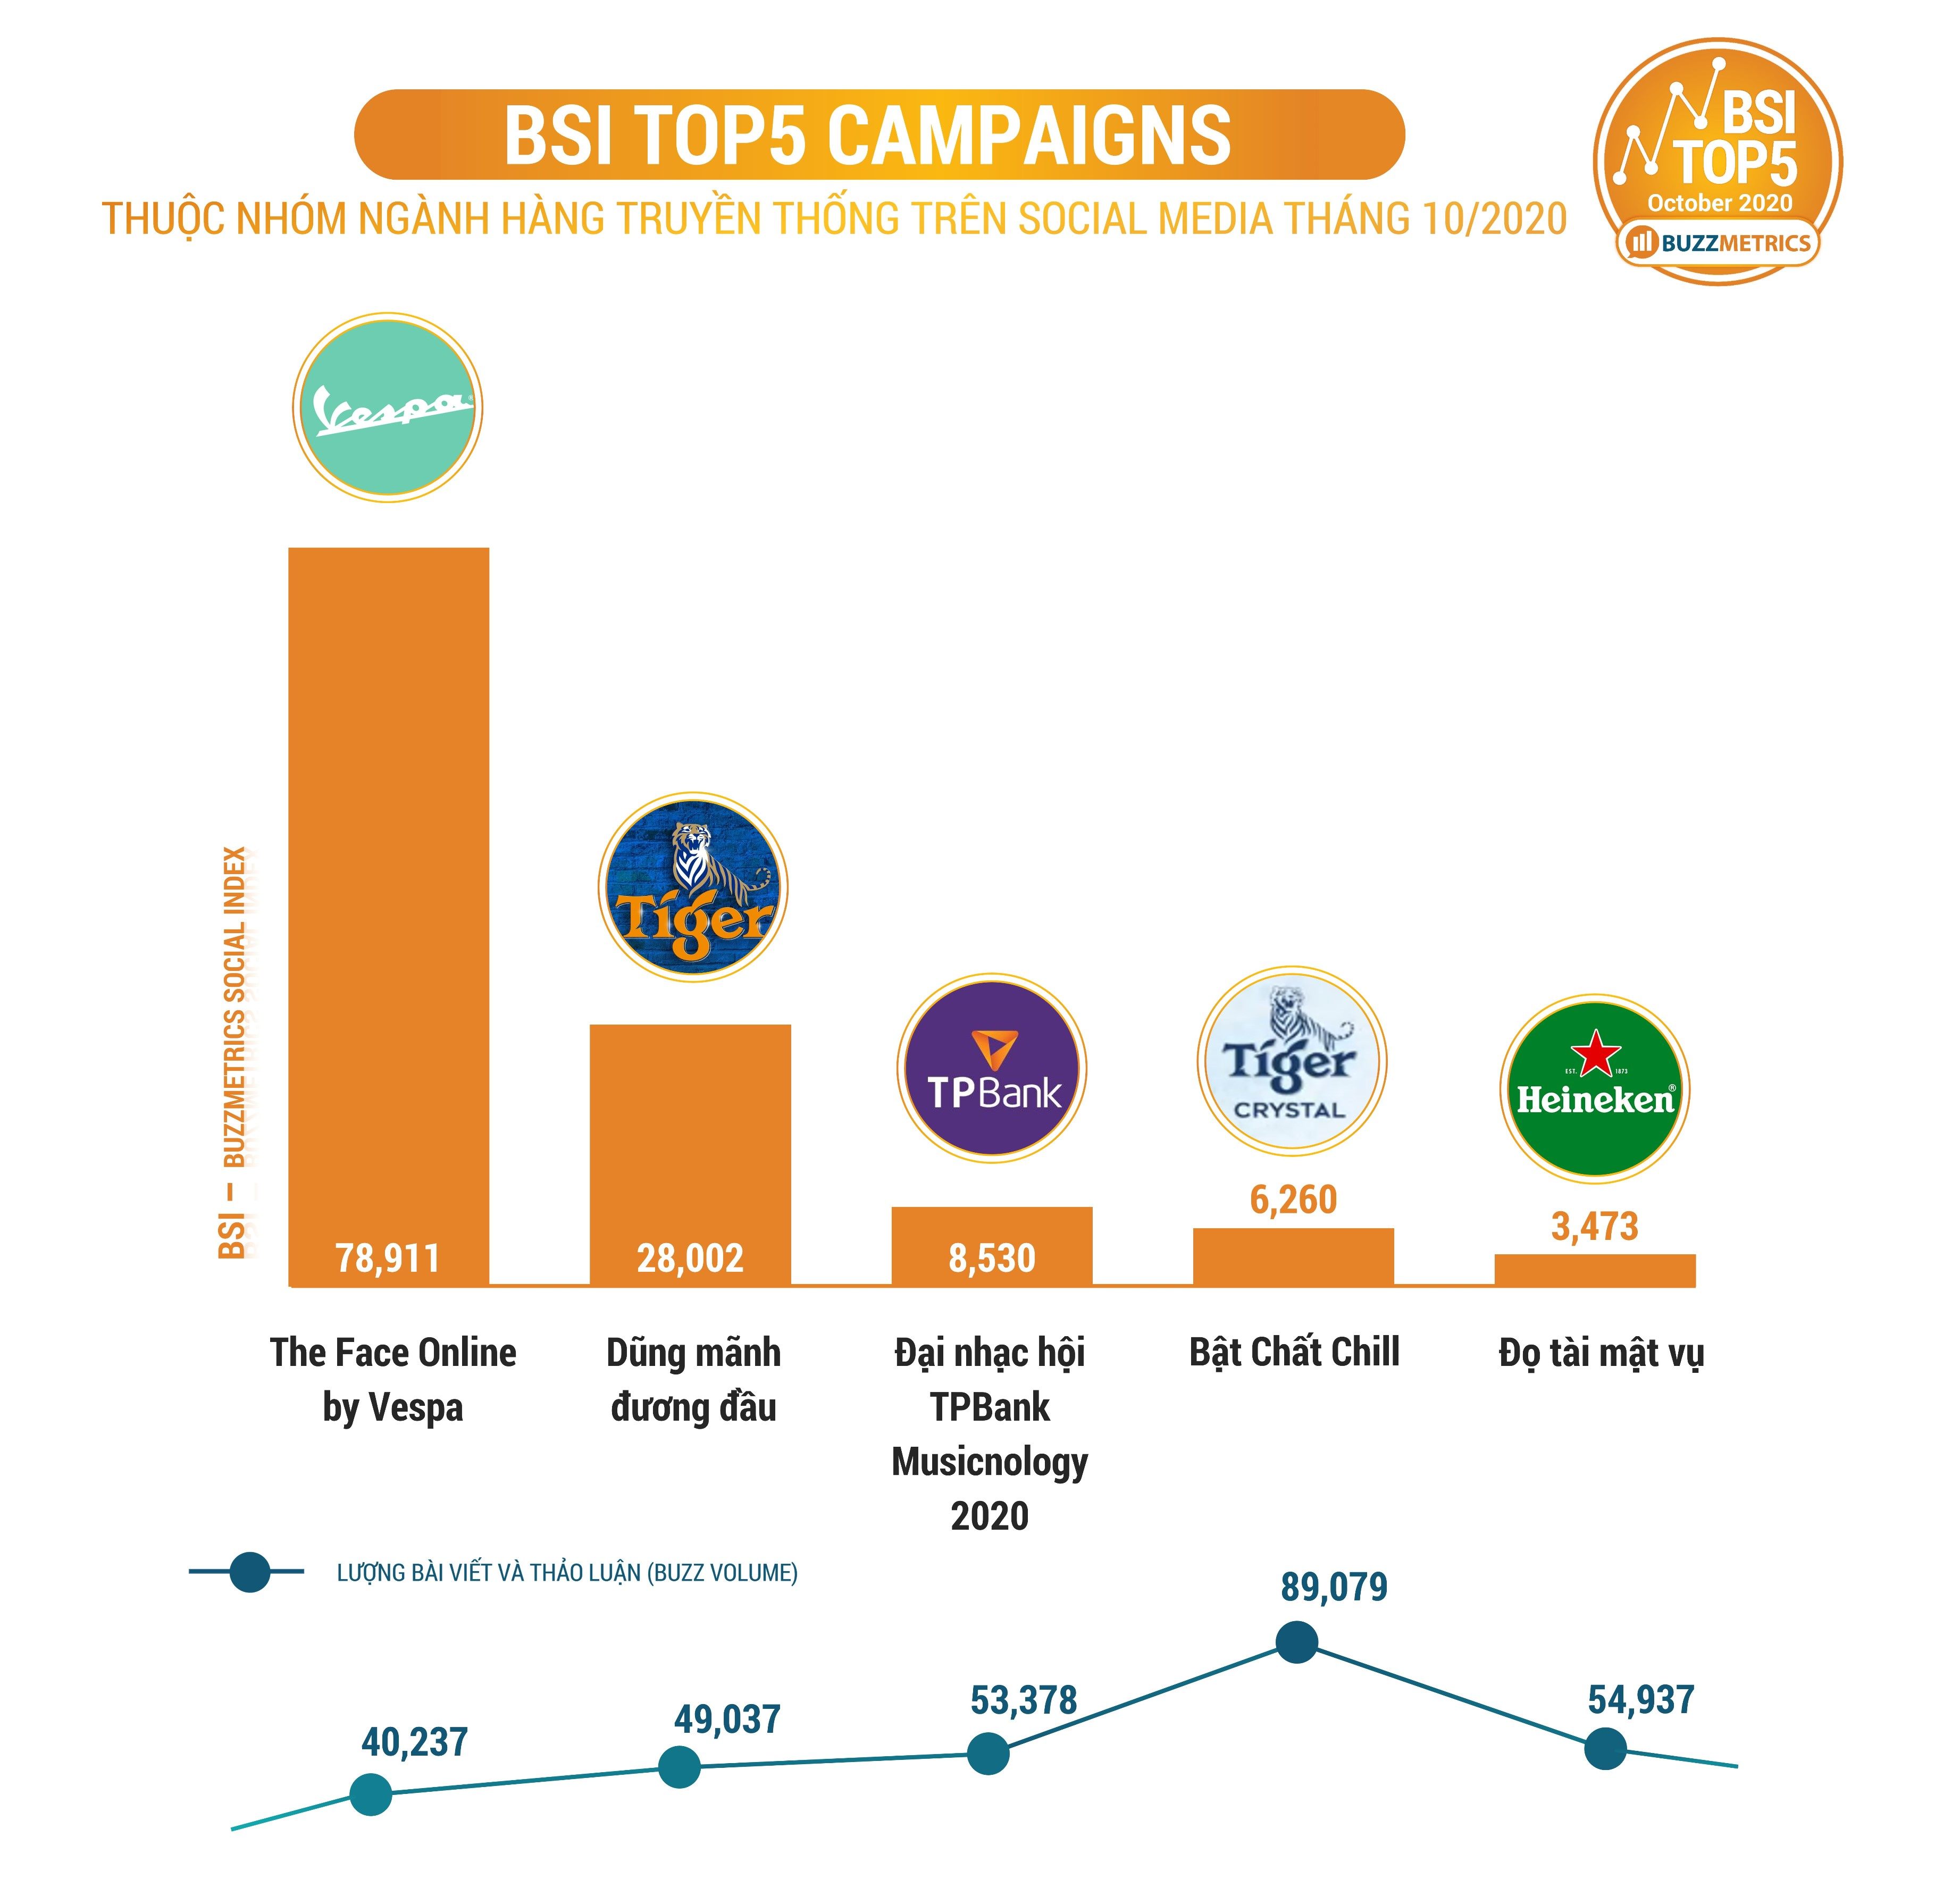 BSI Top5 OCT 2020 CAMPAIGNS chart